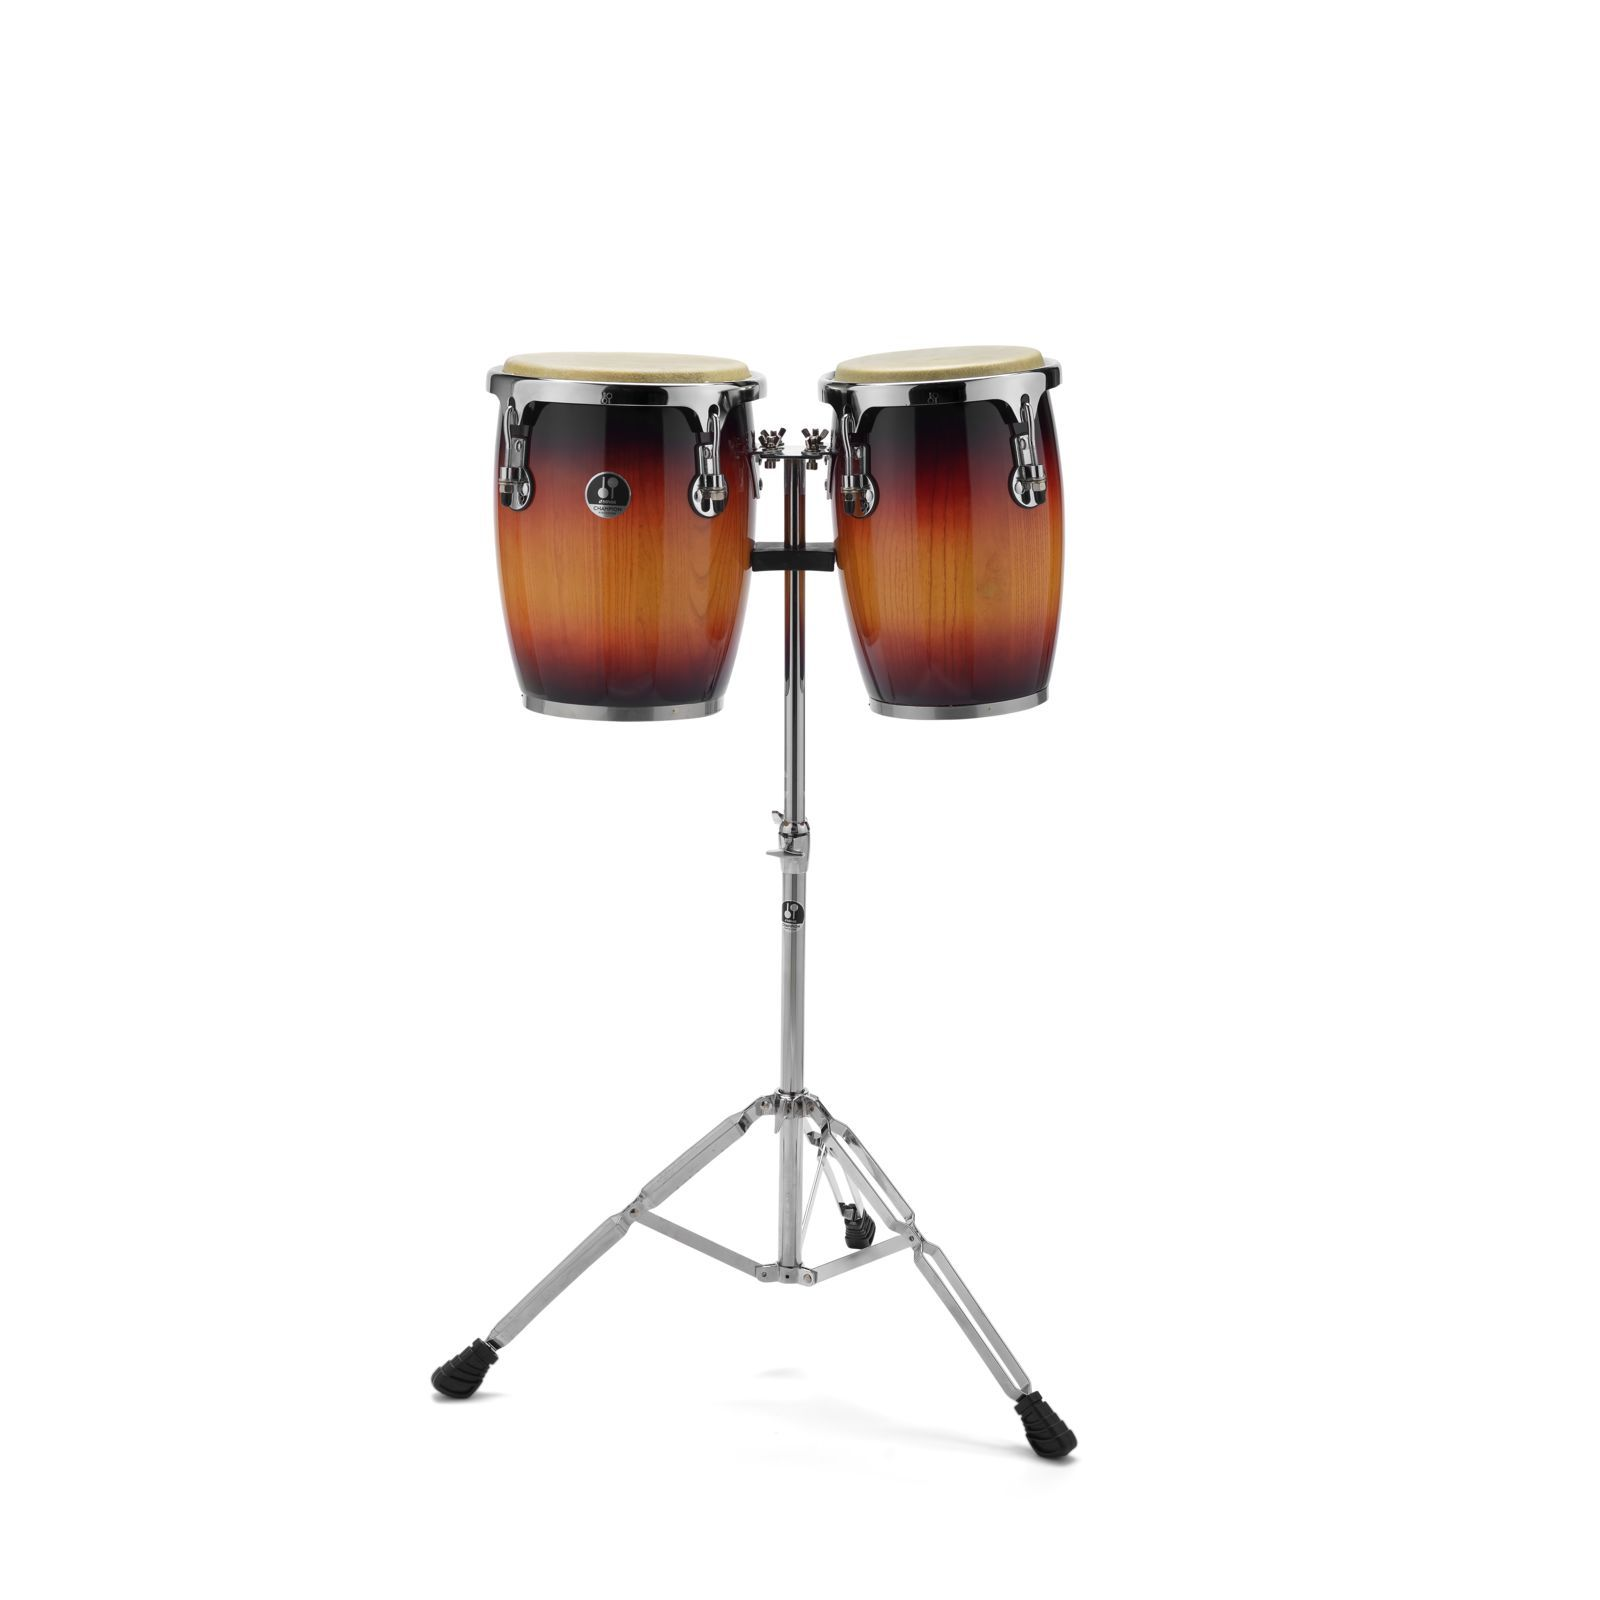 "Sonor Champion Mini Conga Set, CMC0910SHG, 9"" & 10"" Sunburst Produktbillede"